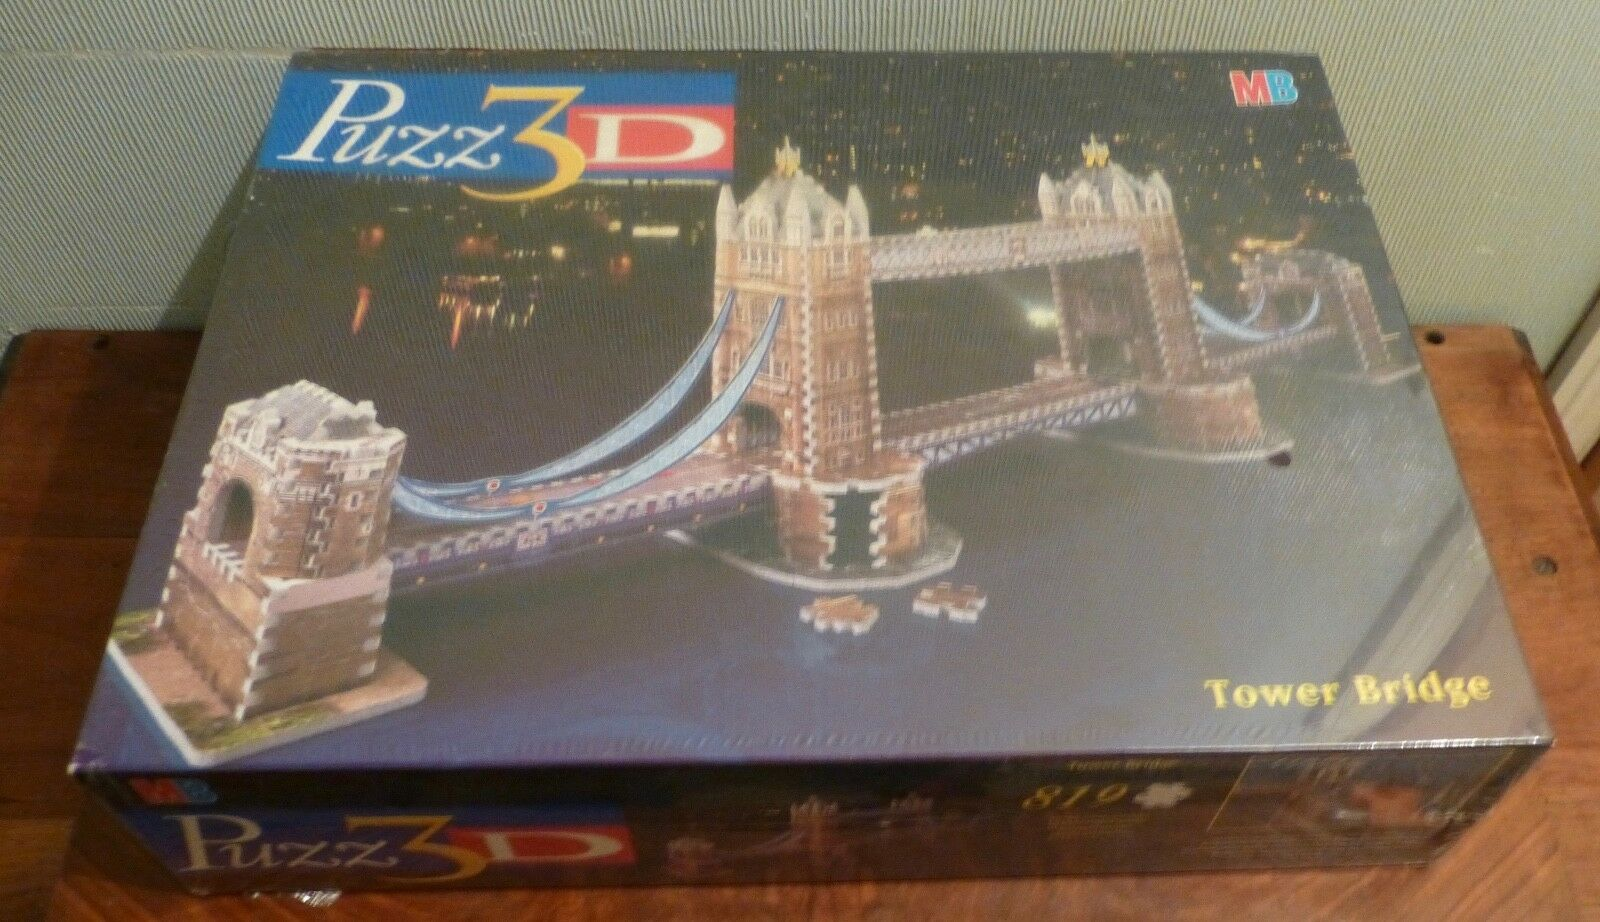 Puzz 3D 819 Tower bridge Factory Sealed. New. MB GAMES.